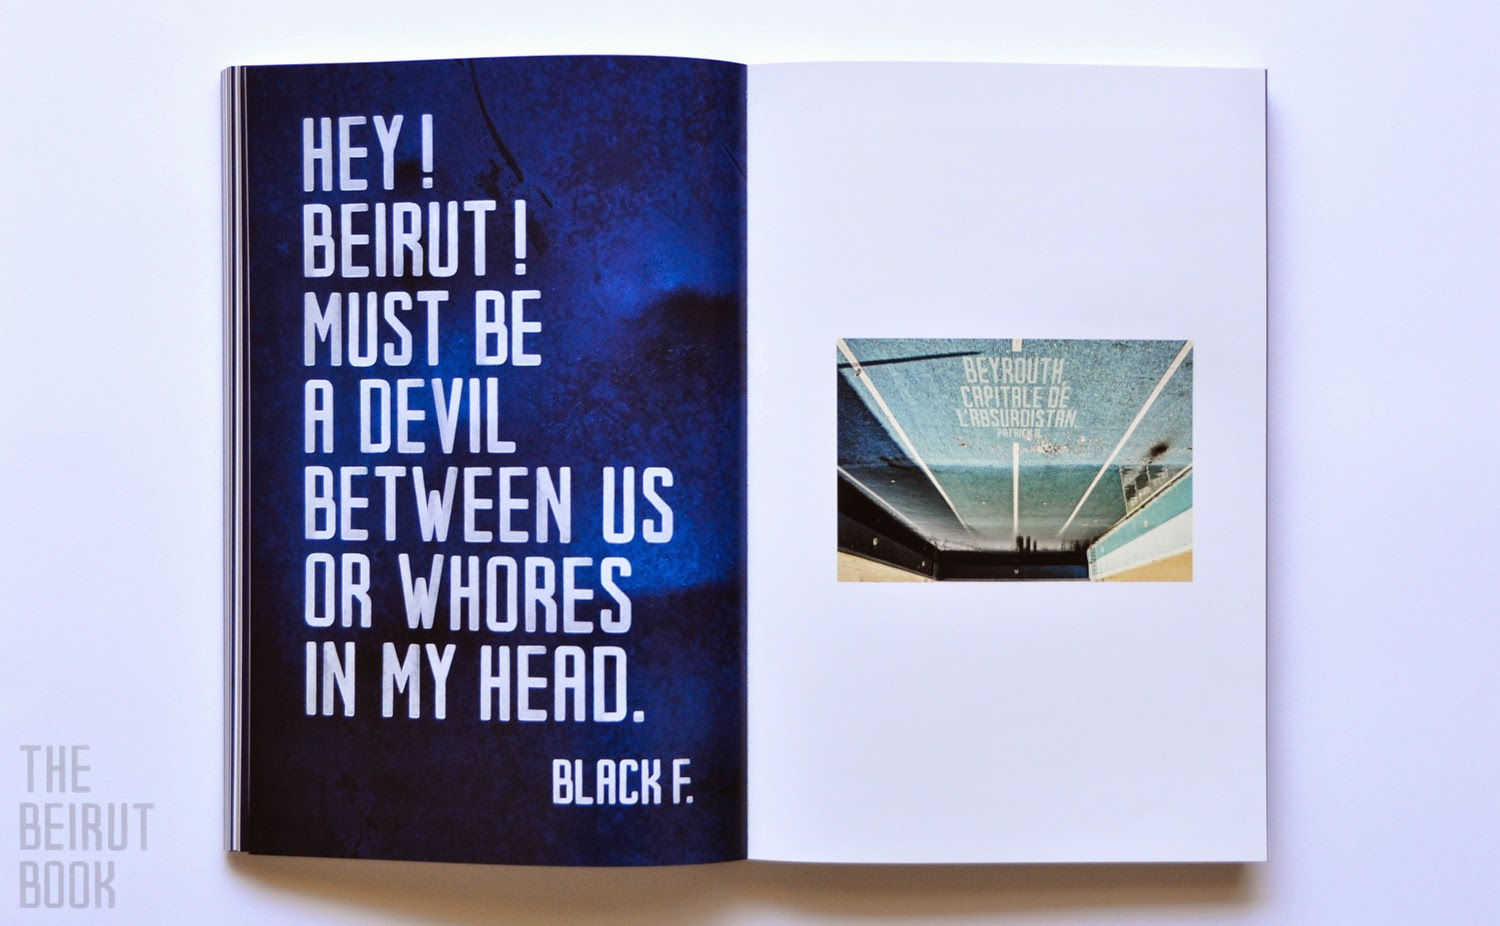 The Beirut Book by David Hury